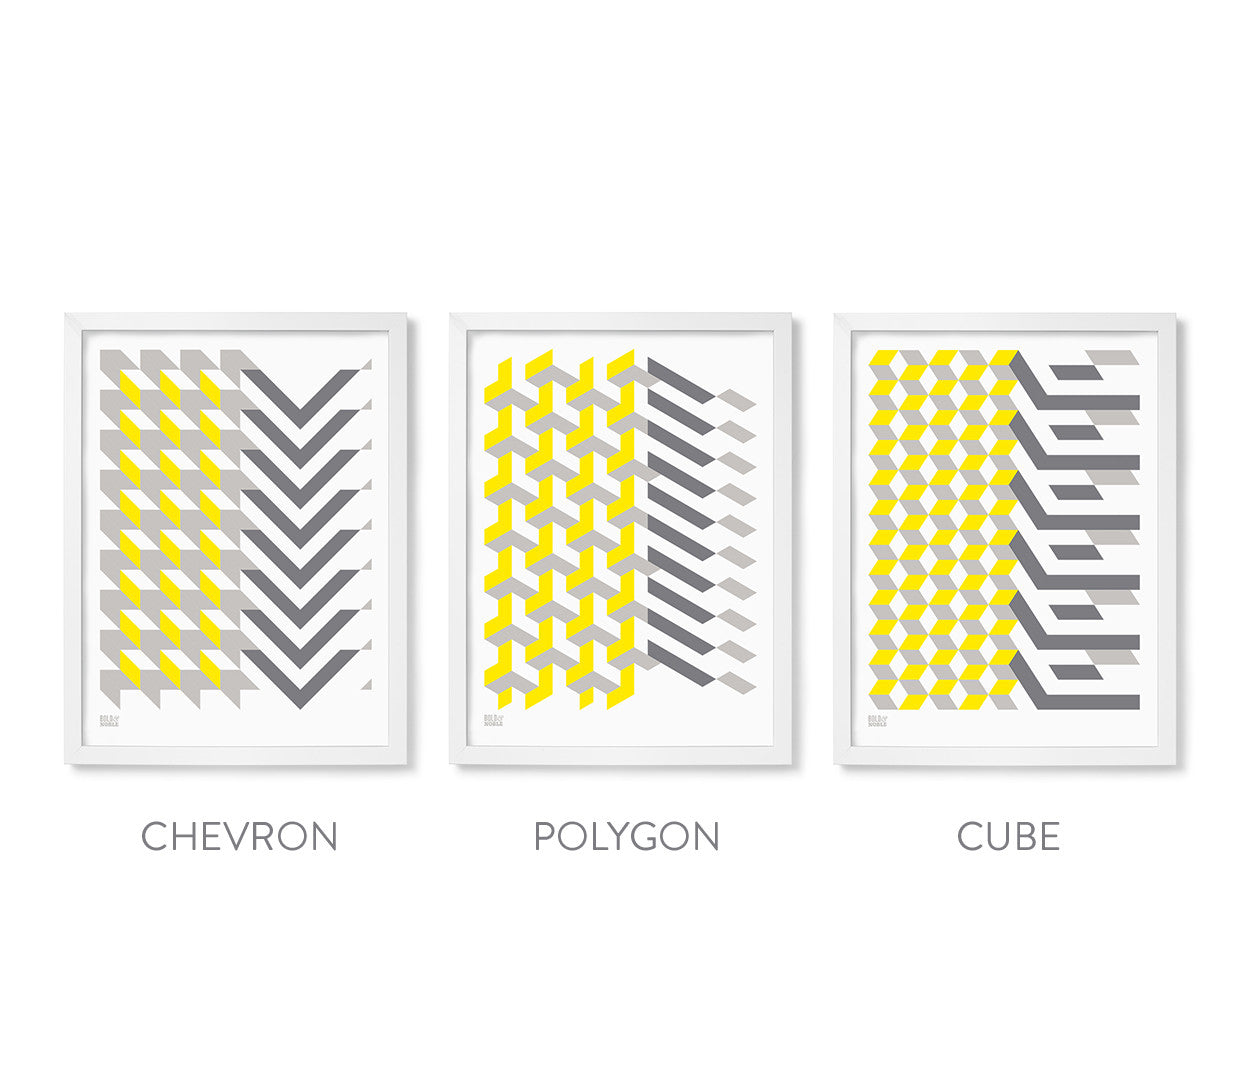 Geometric Set of 3 Wall Art Designs, Printed in the UK, Printed in Yellow and Grey